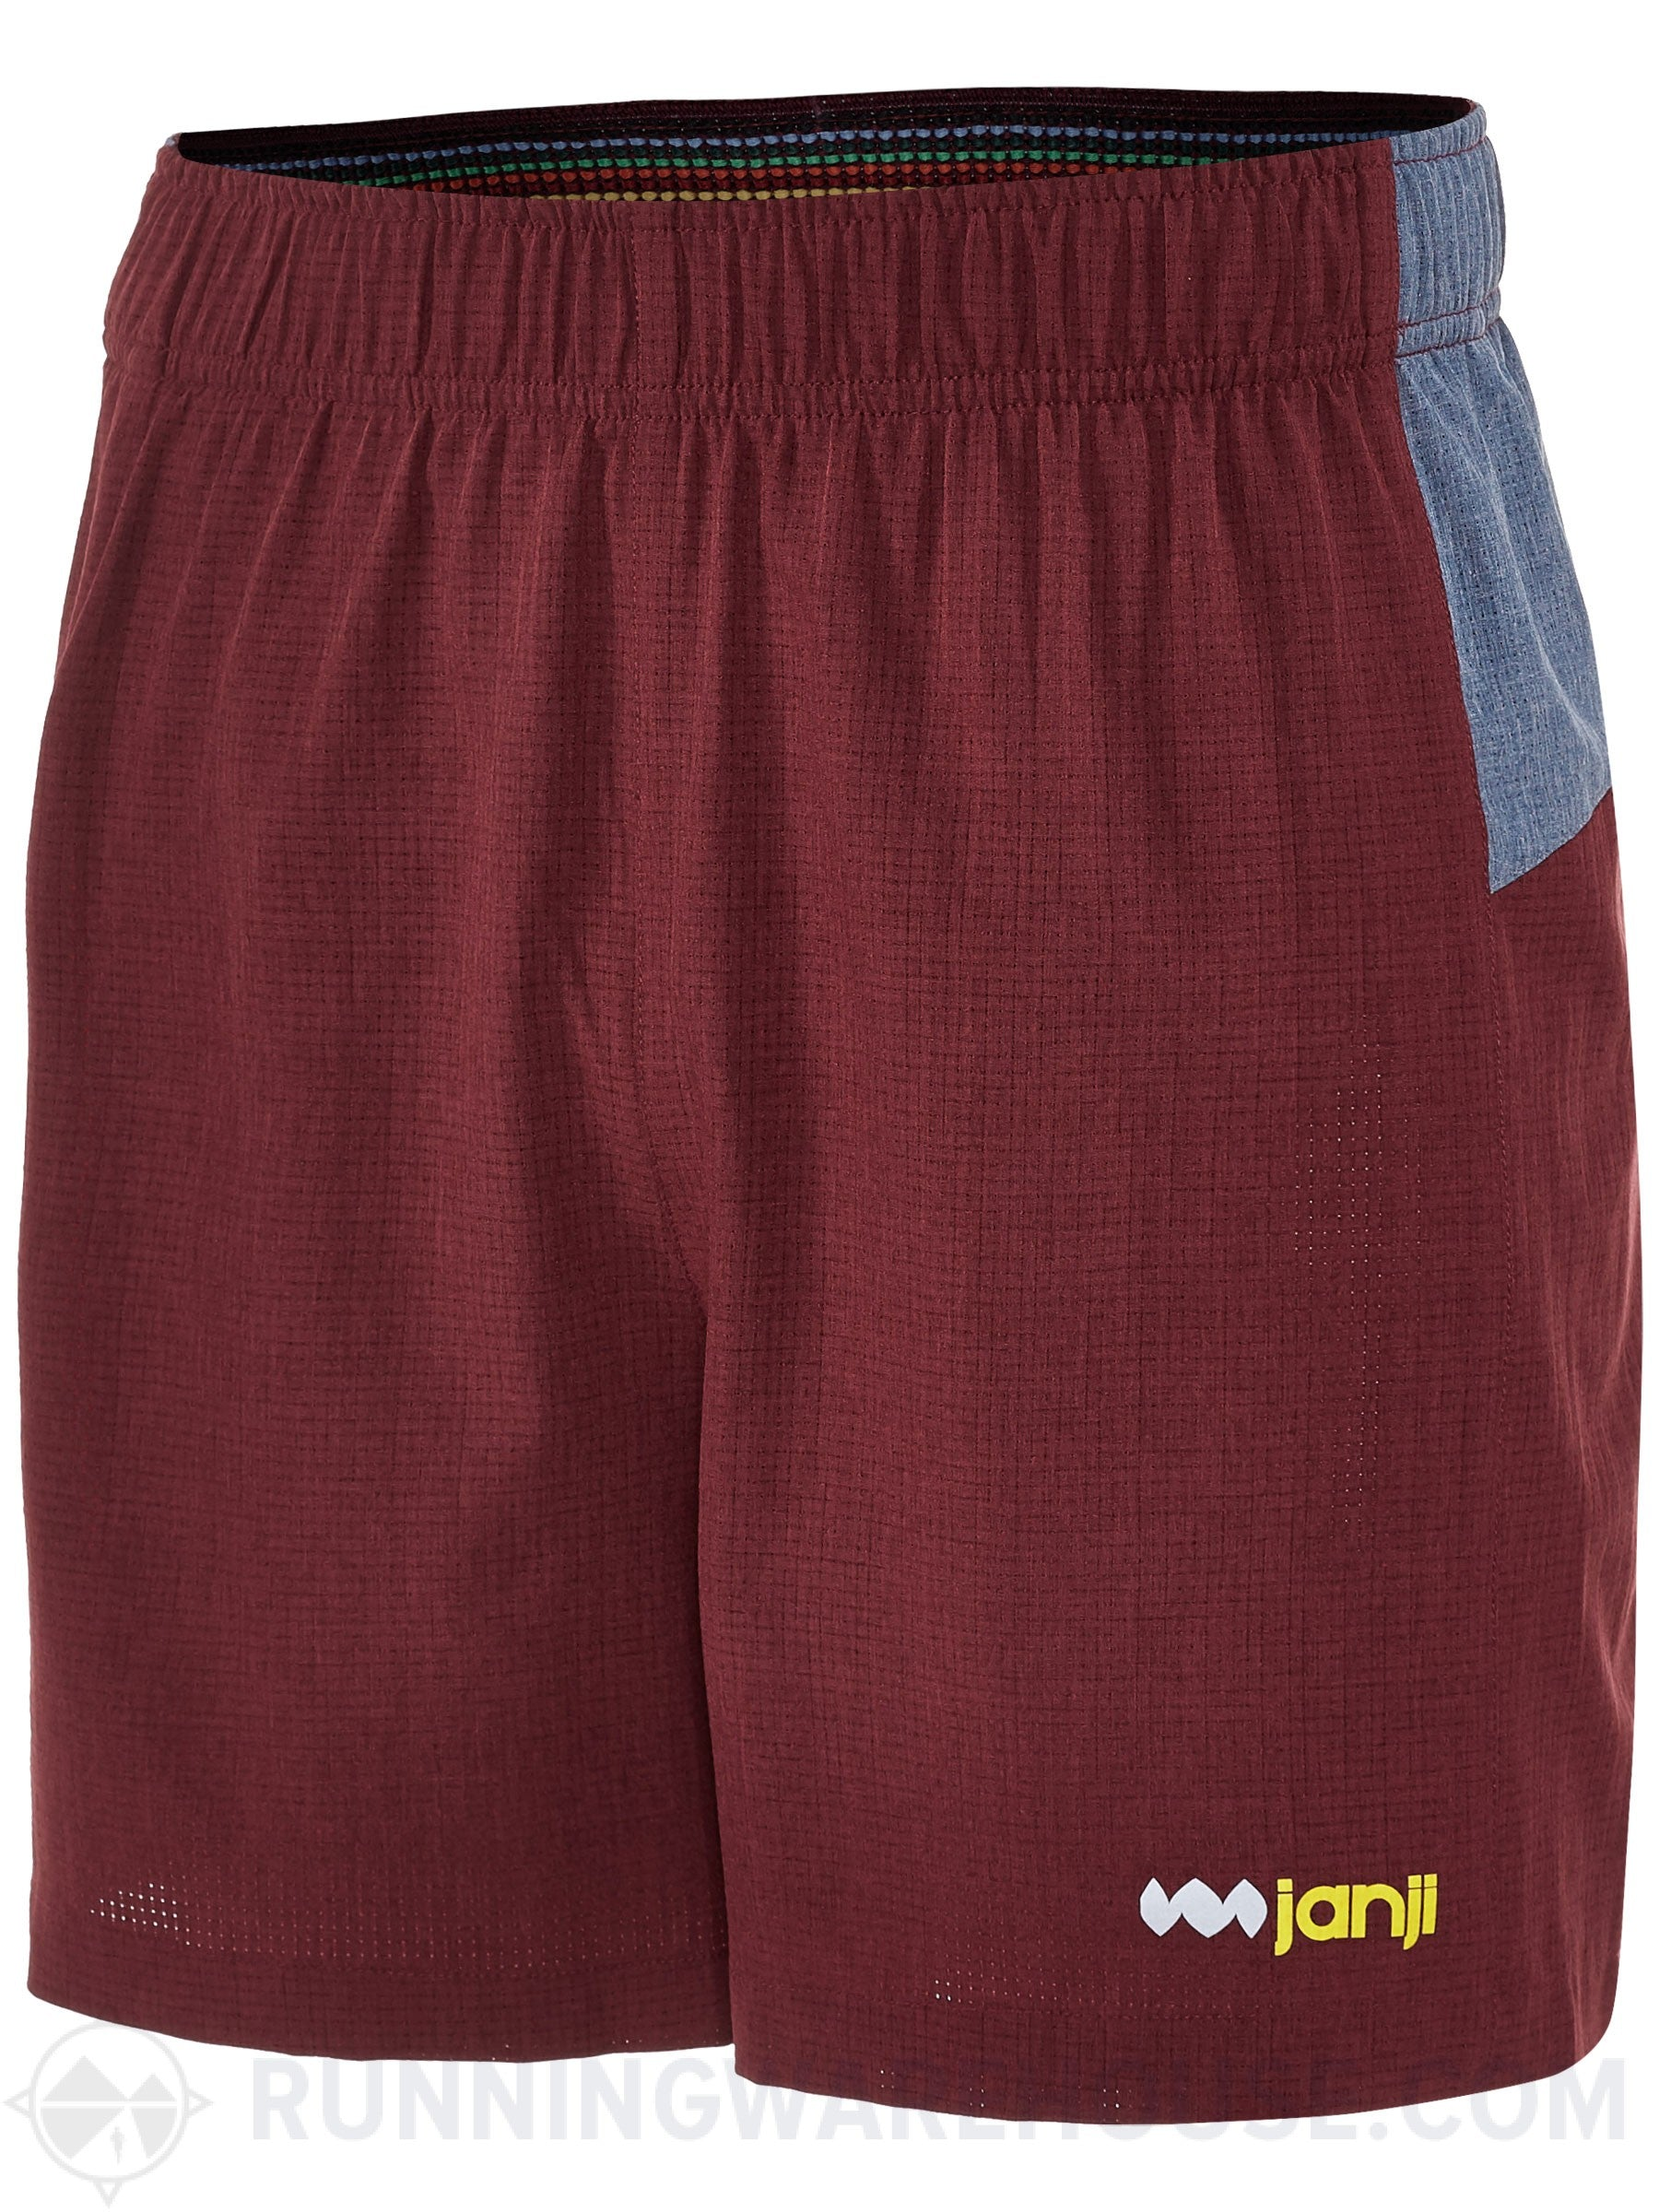 Journeymen Shorts - Red